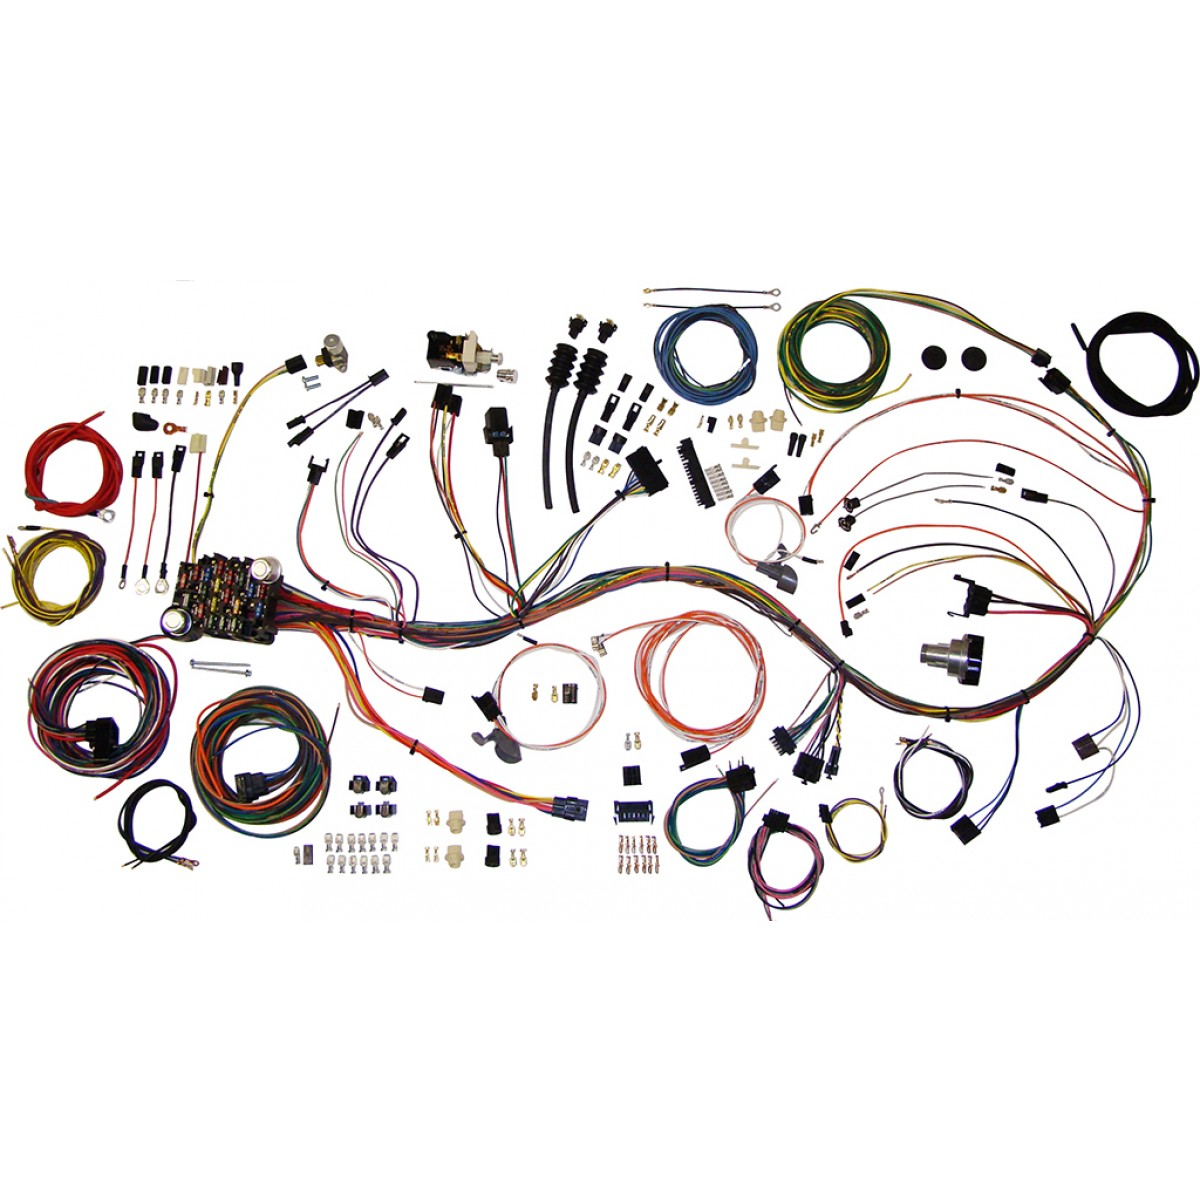 Complete Wiring Kit - 1969-72 Chevy Truck